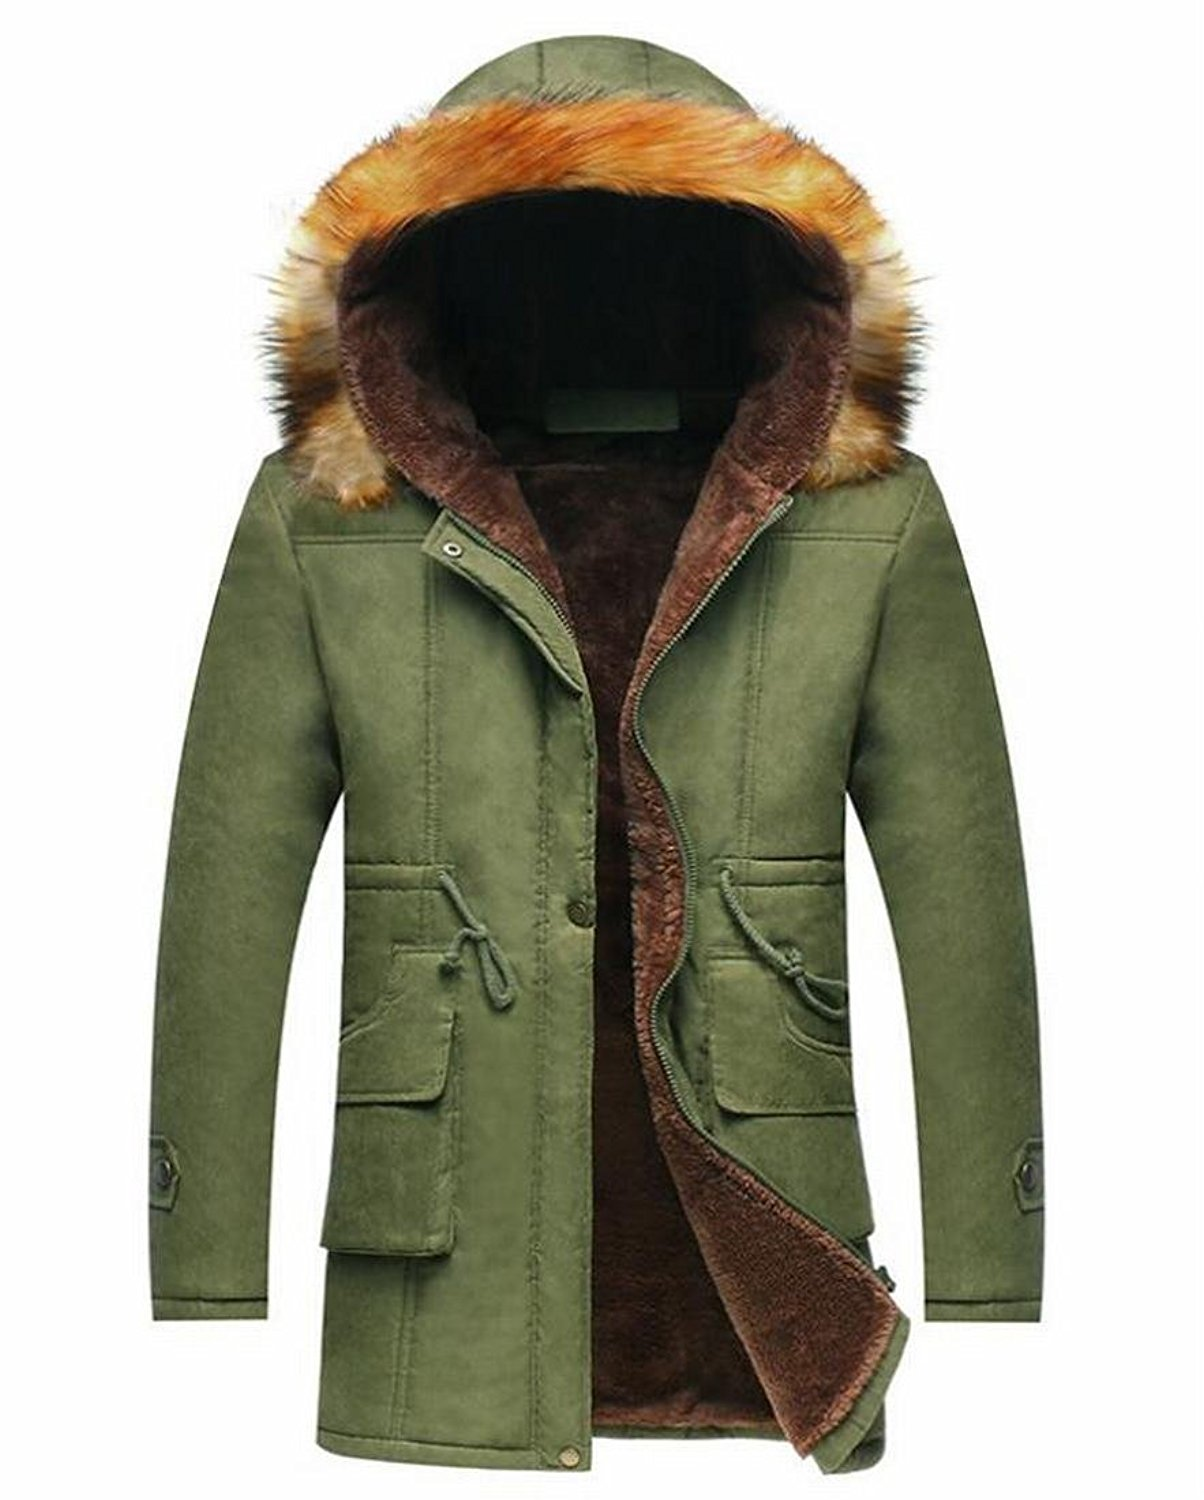 XTX Men Multi Pockets Cotton Lined Warm Faux Fur Hood Winter Quilted Jacket Coat Outerwear